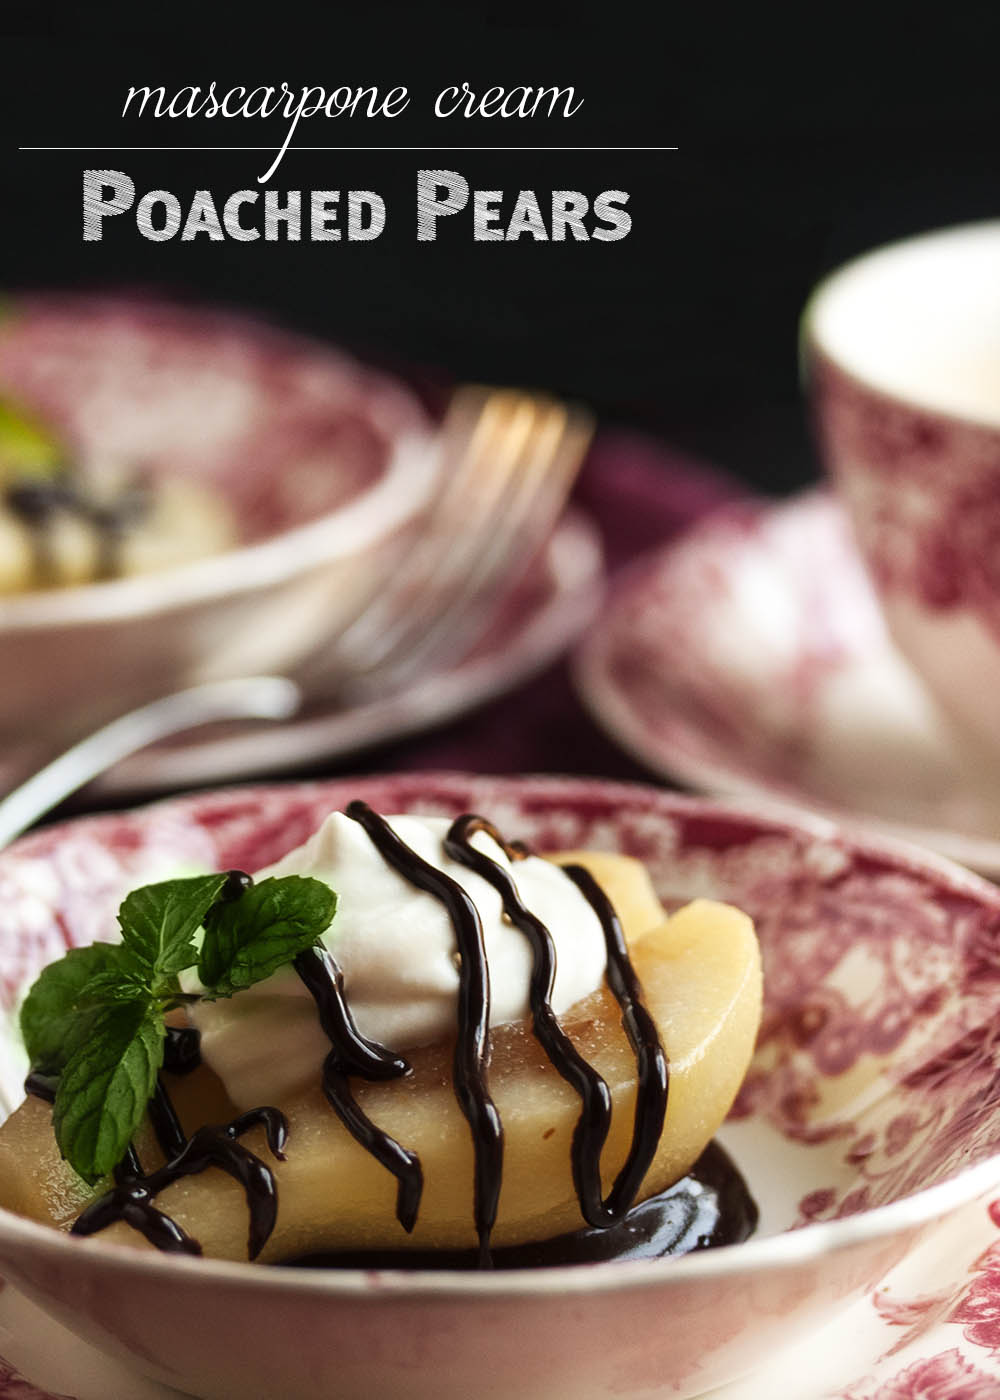 Poached Pears with Mascarpone Cream - These pears are poached in a spiced white wine syrup and then filled with mascarpone whipped cream and finished with a drizzle of bittersweet chocolate sauce. A wonderful way to end a holiday meal! | justalittlebitofbacon.com